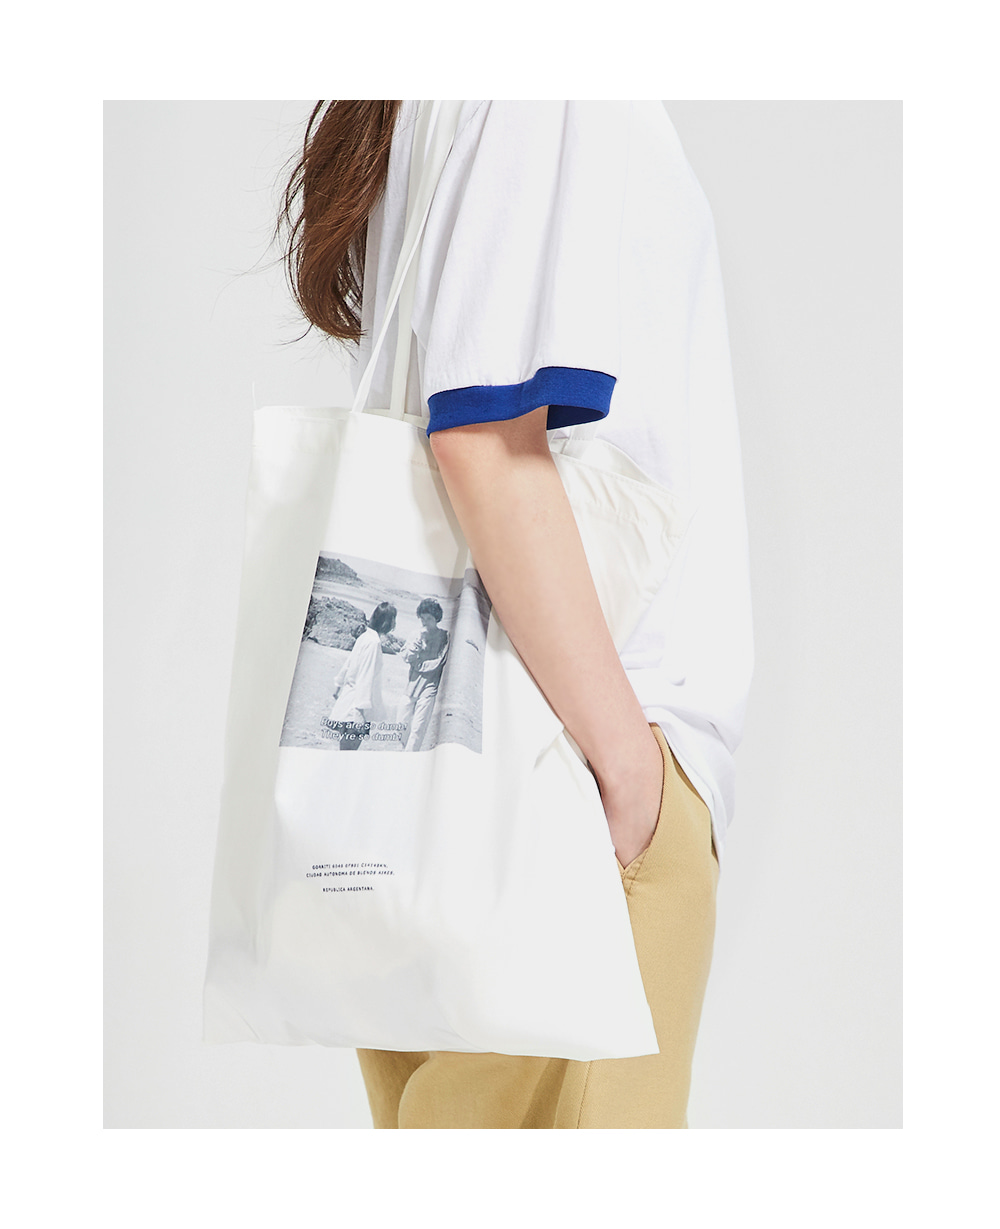 AIN - Korean Fashion - #Kfashion - Movie Unique Eco Bag